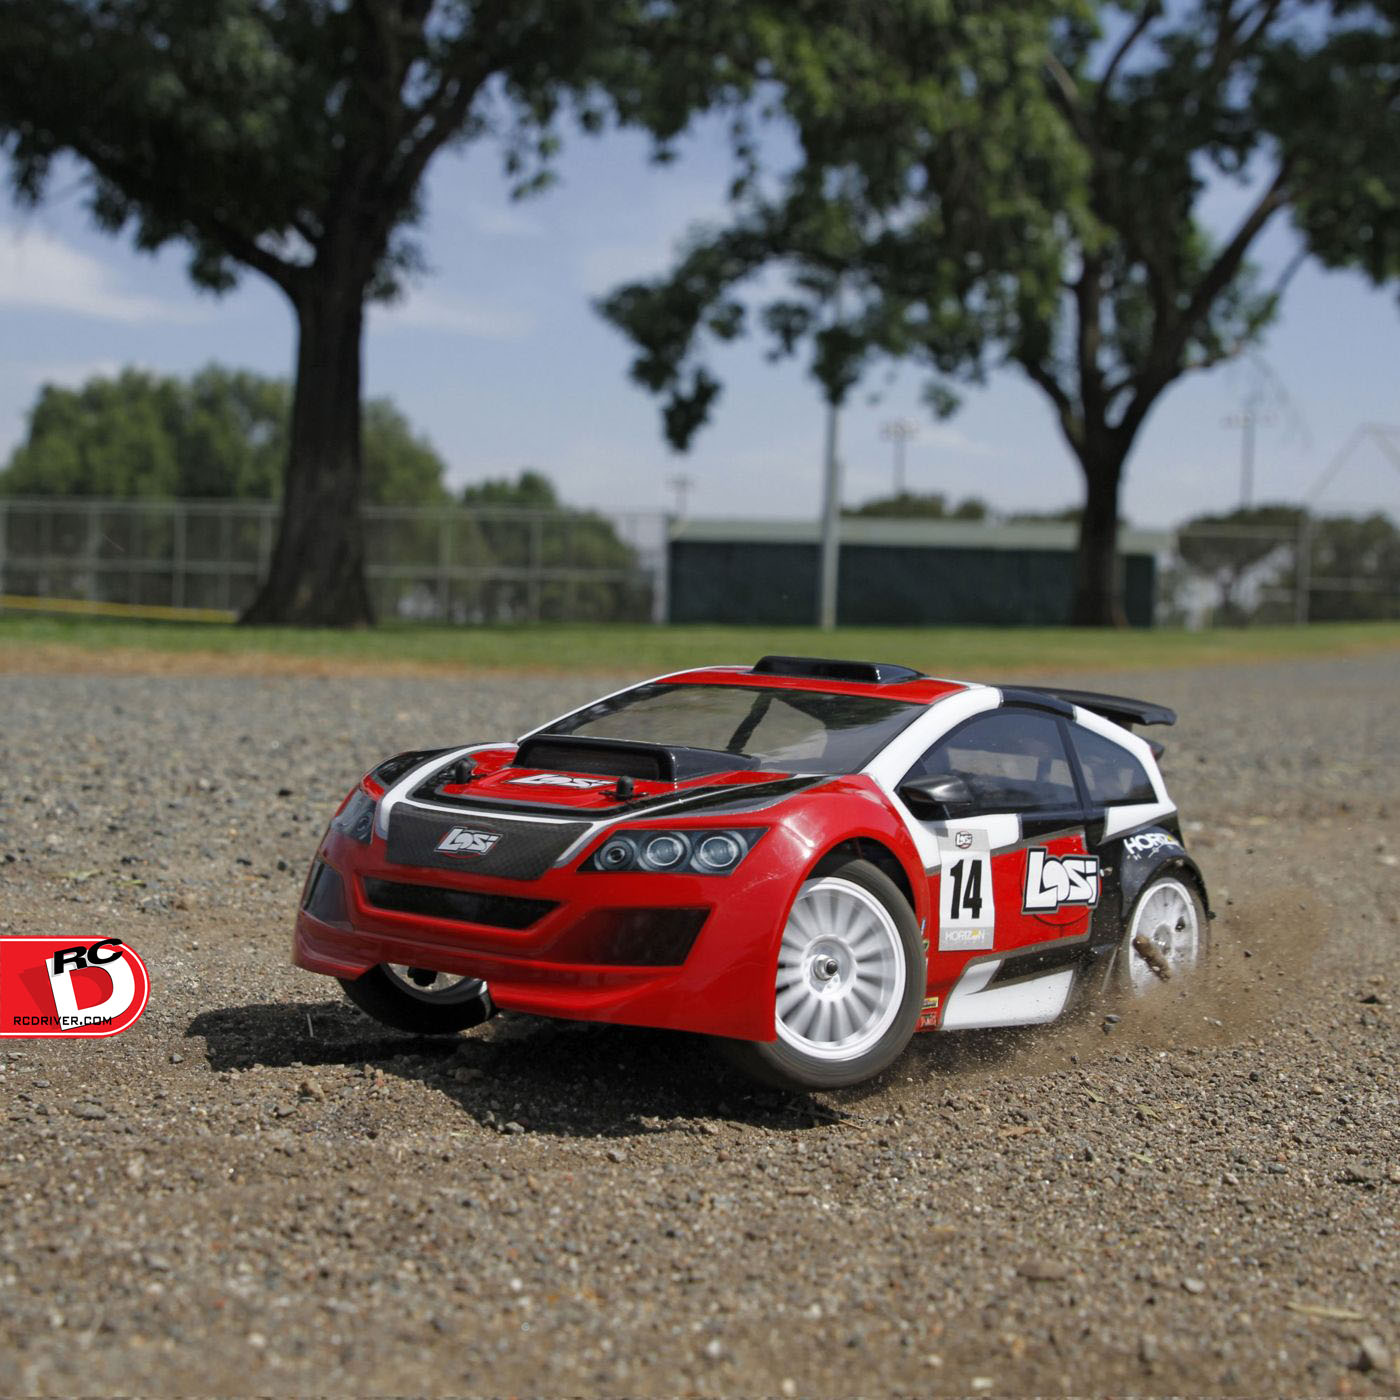 The Losi 1/14 Mini Rally Car